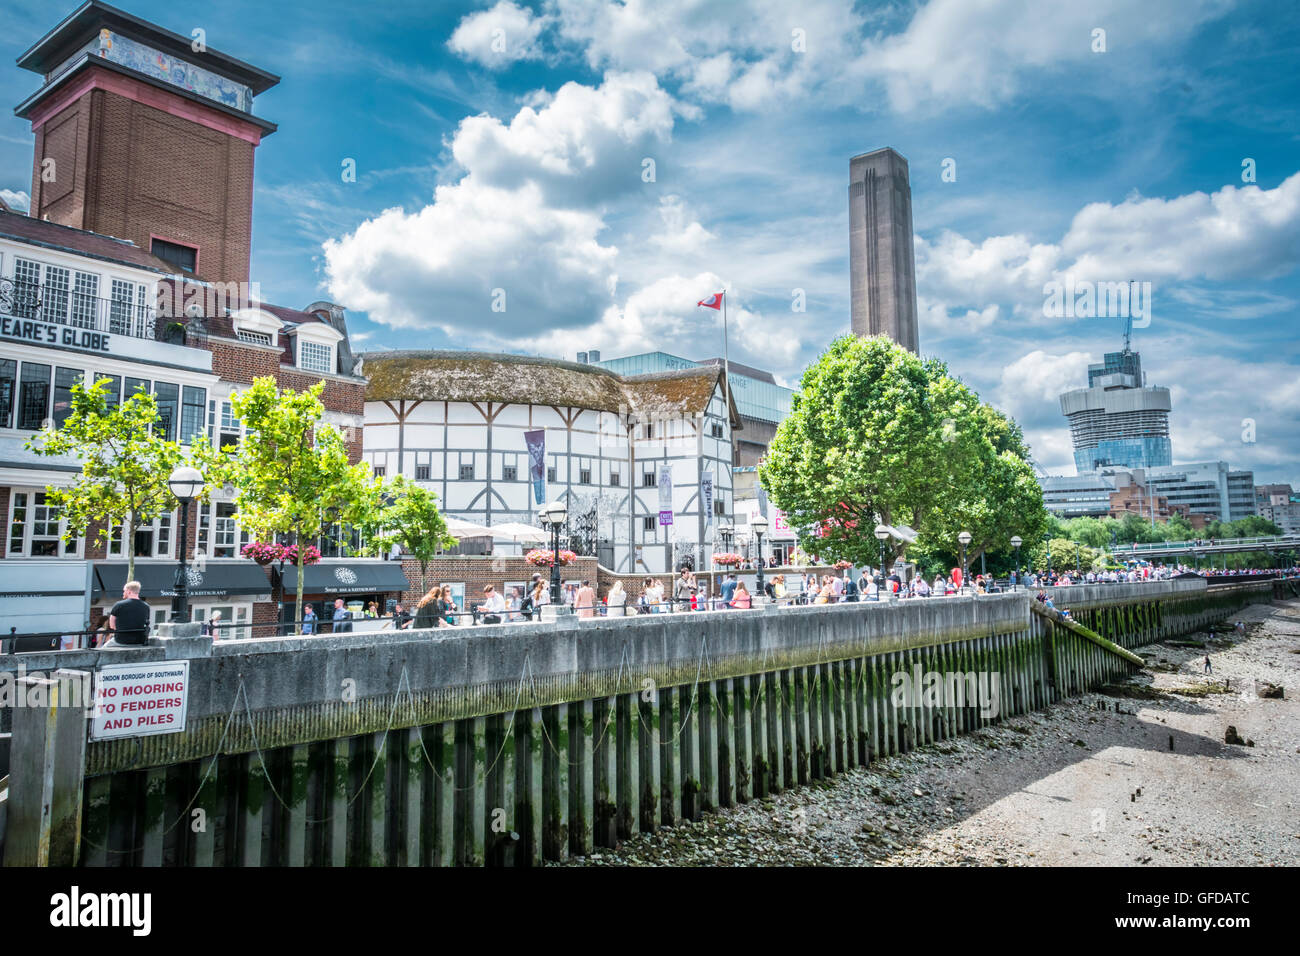 The Globe Theatre and Tate Modern on London's Bankside as seen from the river Thames - Stock Image